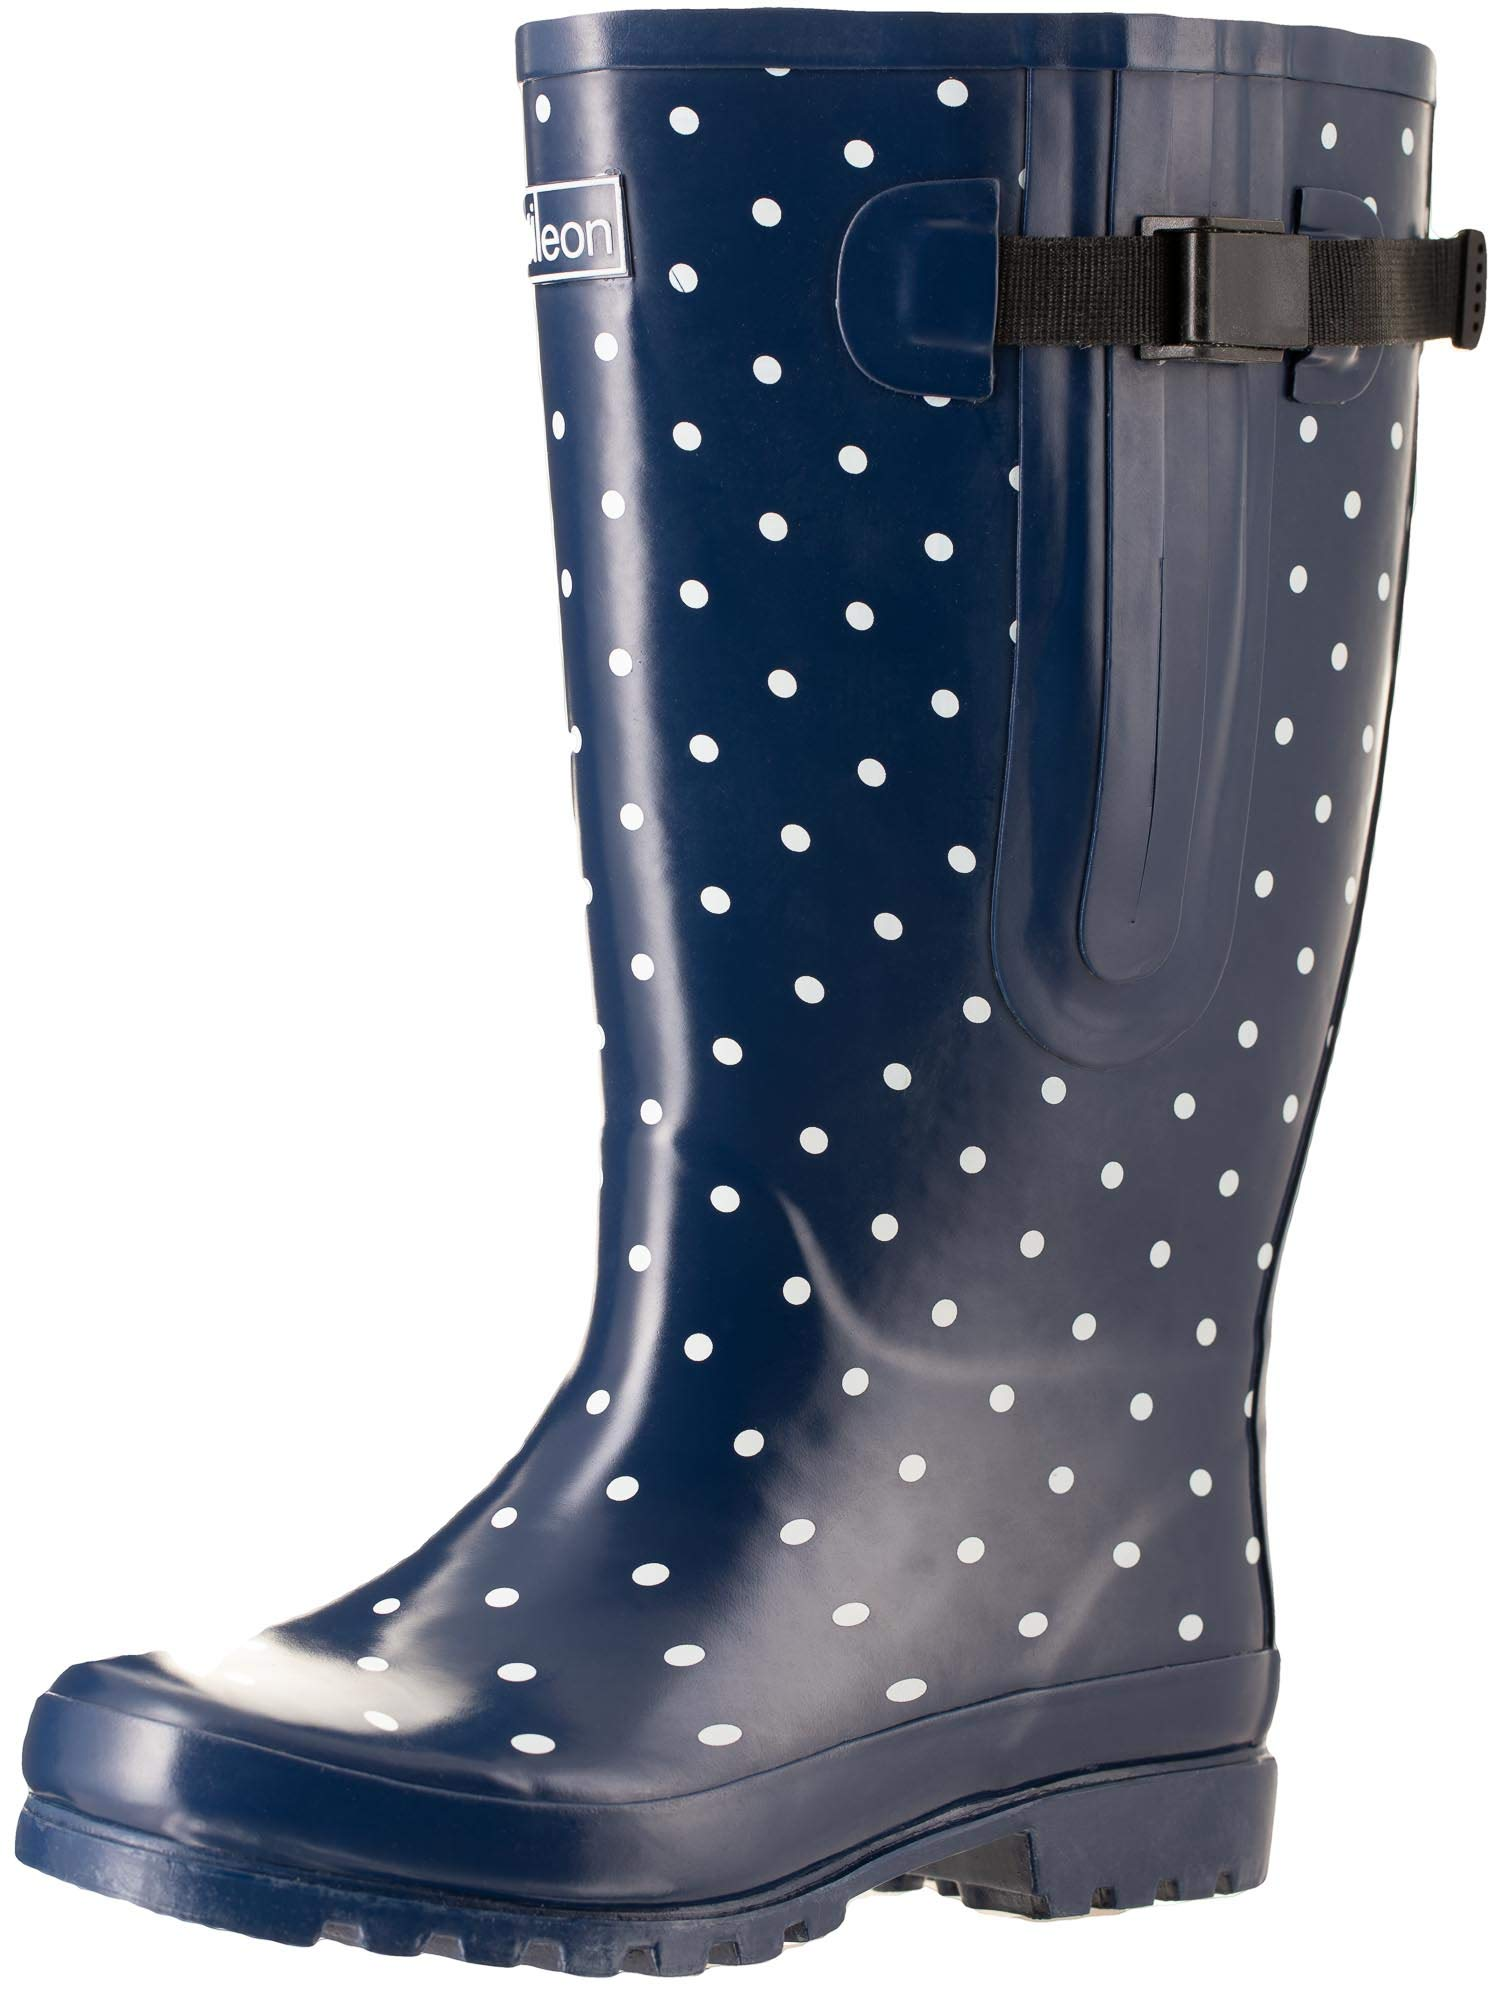 StormWells Ladies Wide Calf Wellies Wellington Boots Plus Extra Comfort Memory 7